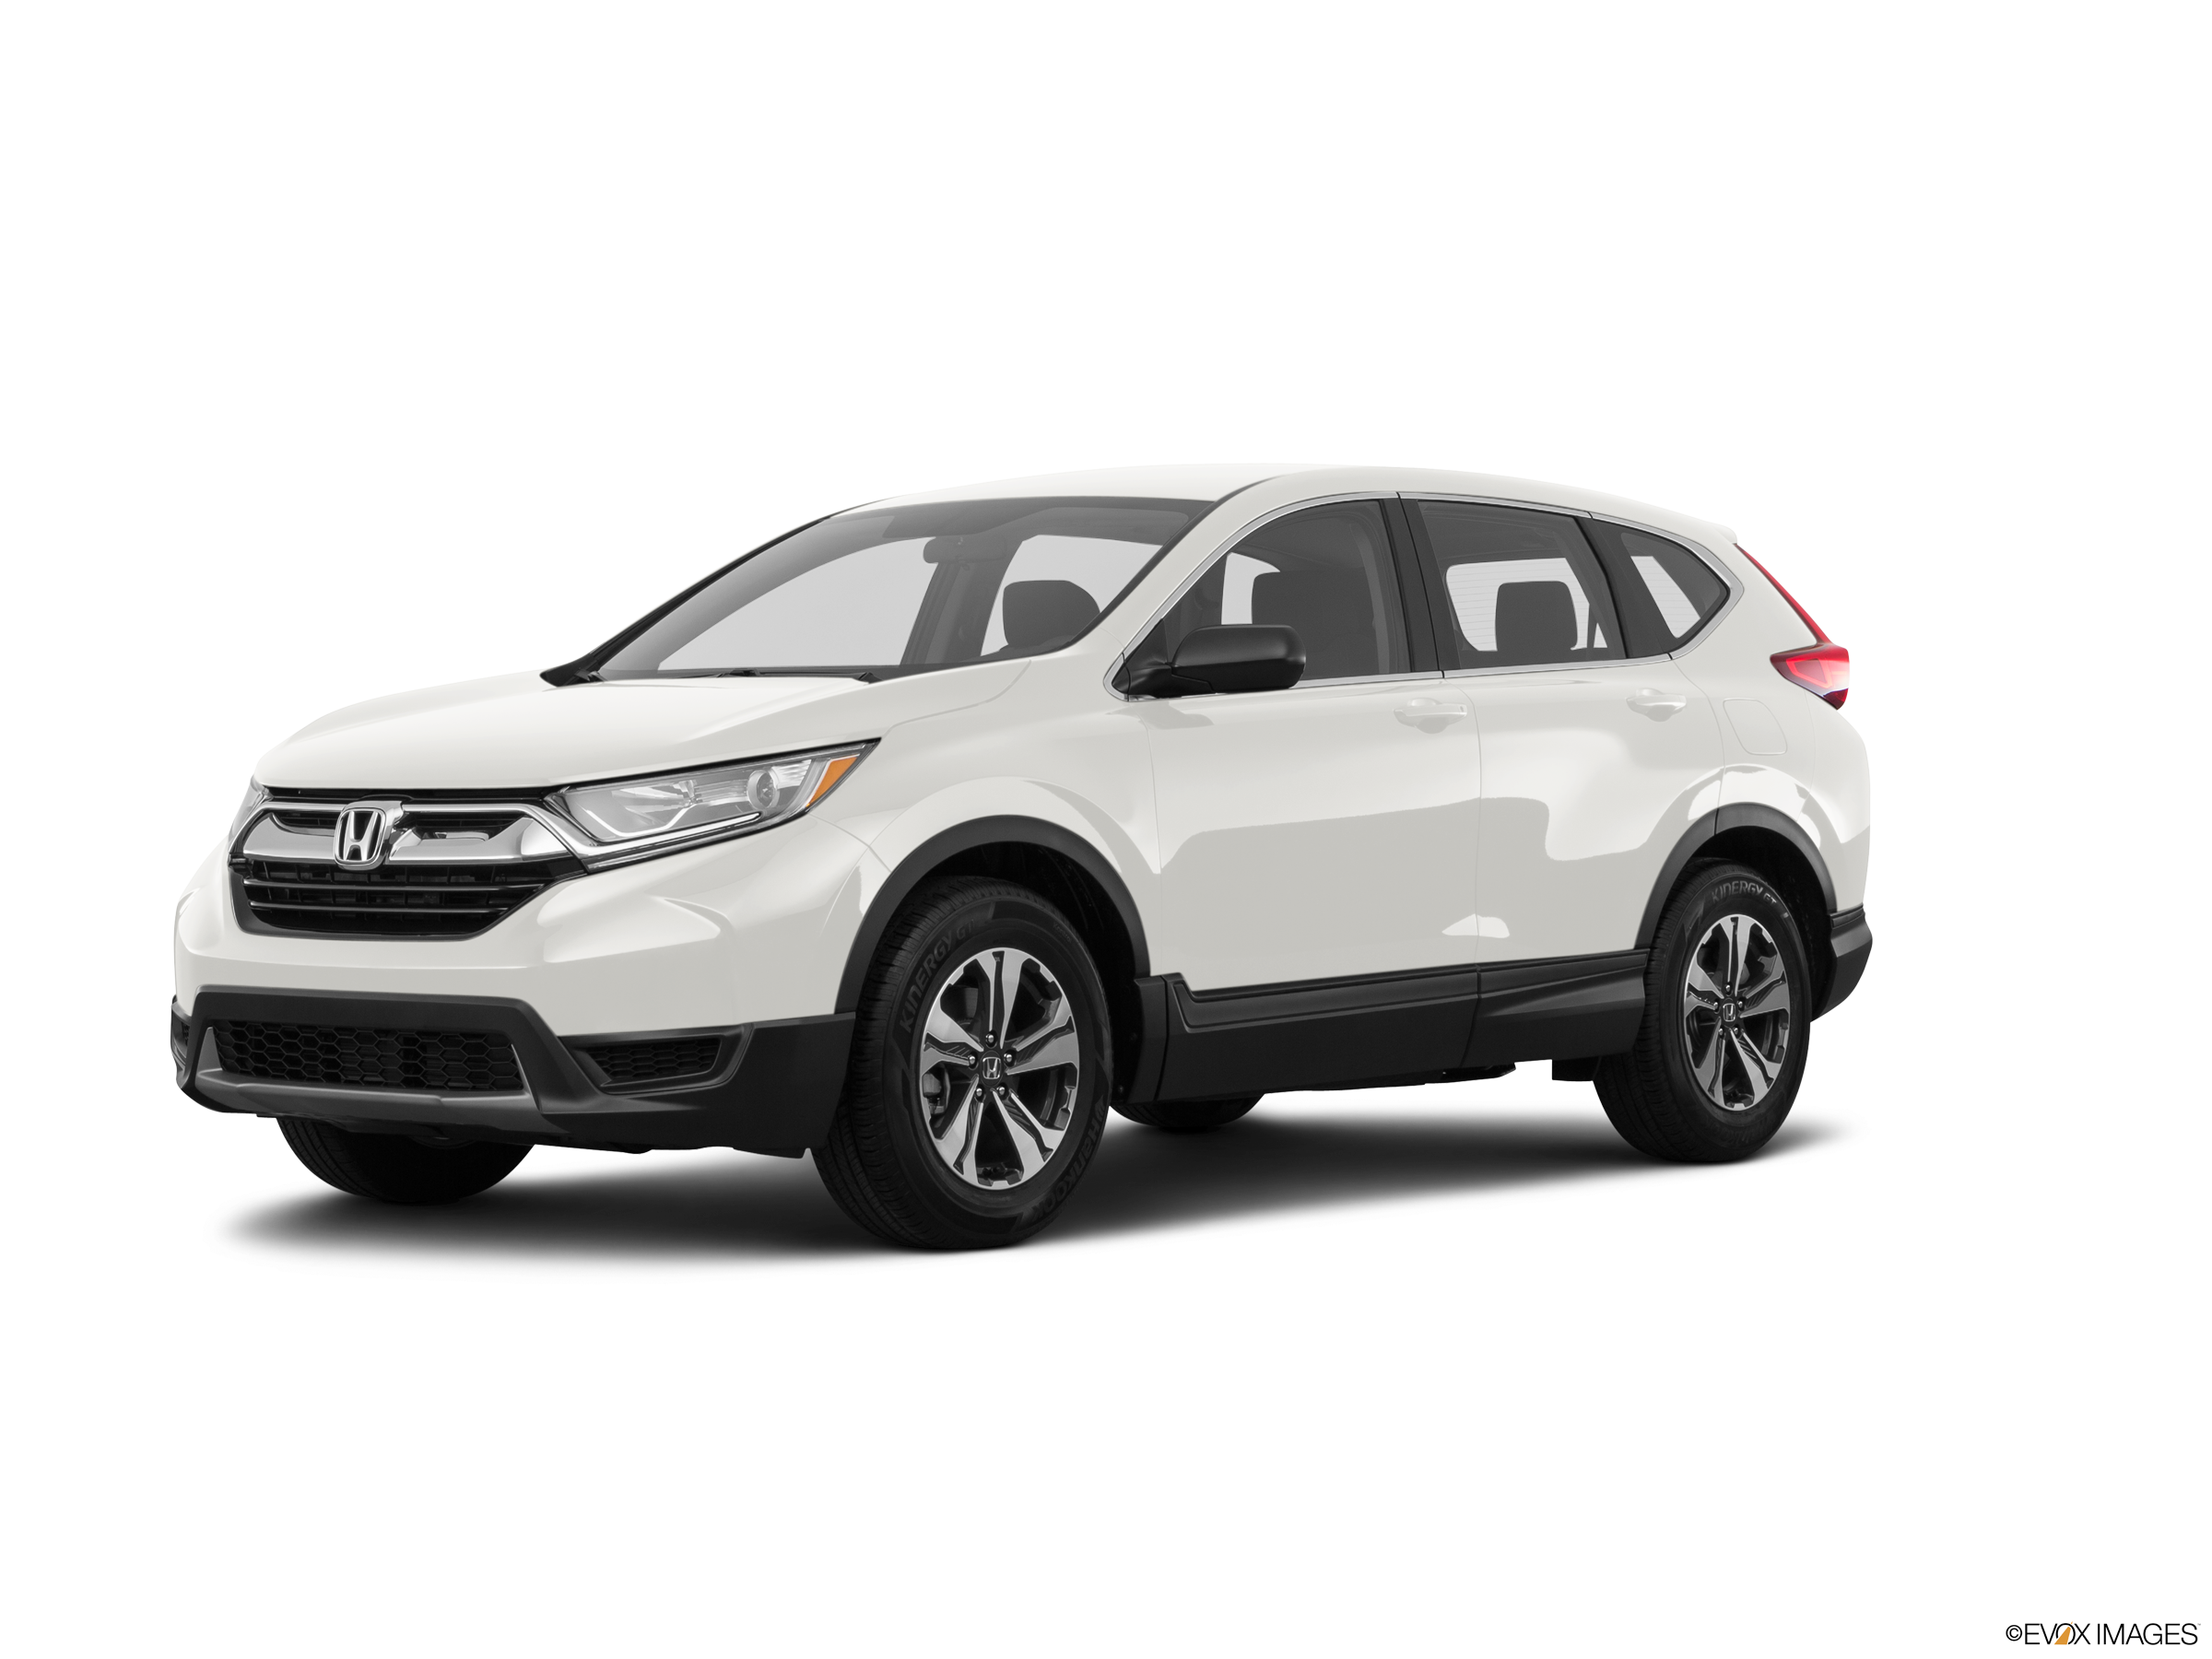 25 Best-Selling SUVs of 2018 - Honda CR-V